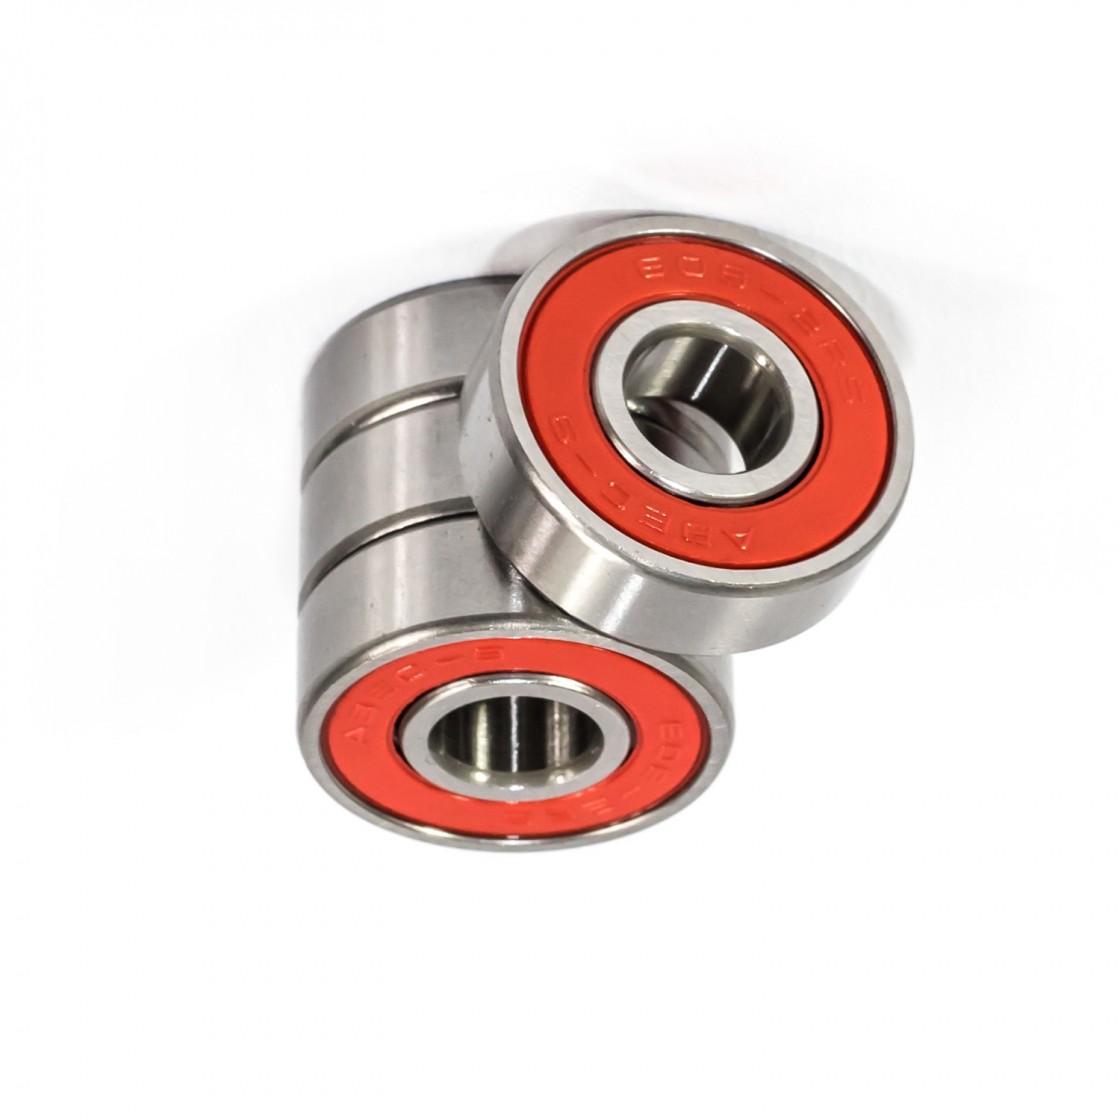 ABEC-7 Carbon Material 608zz Ball Bearing for Sliding Window Door Roller